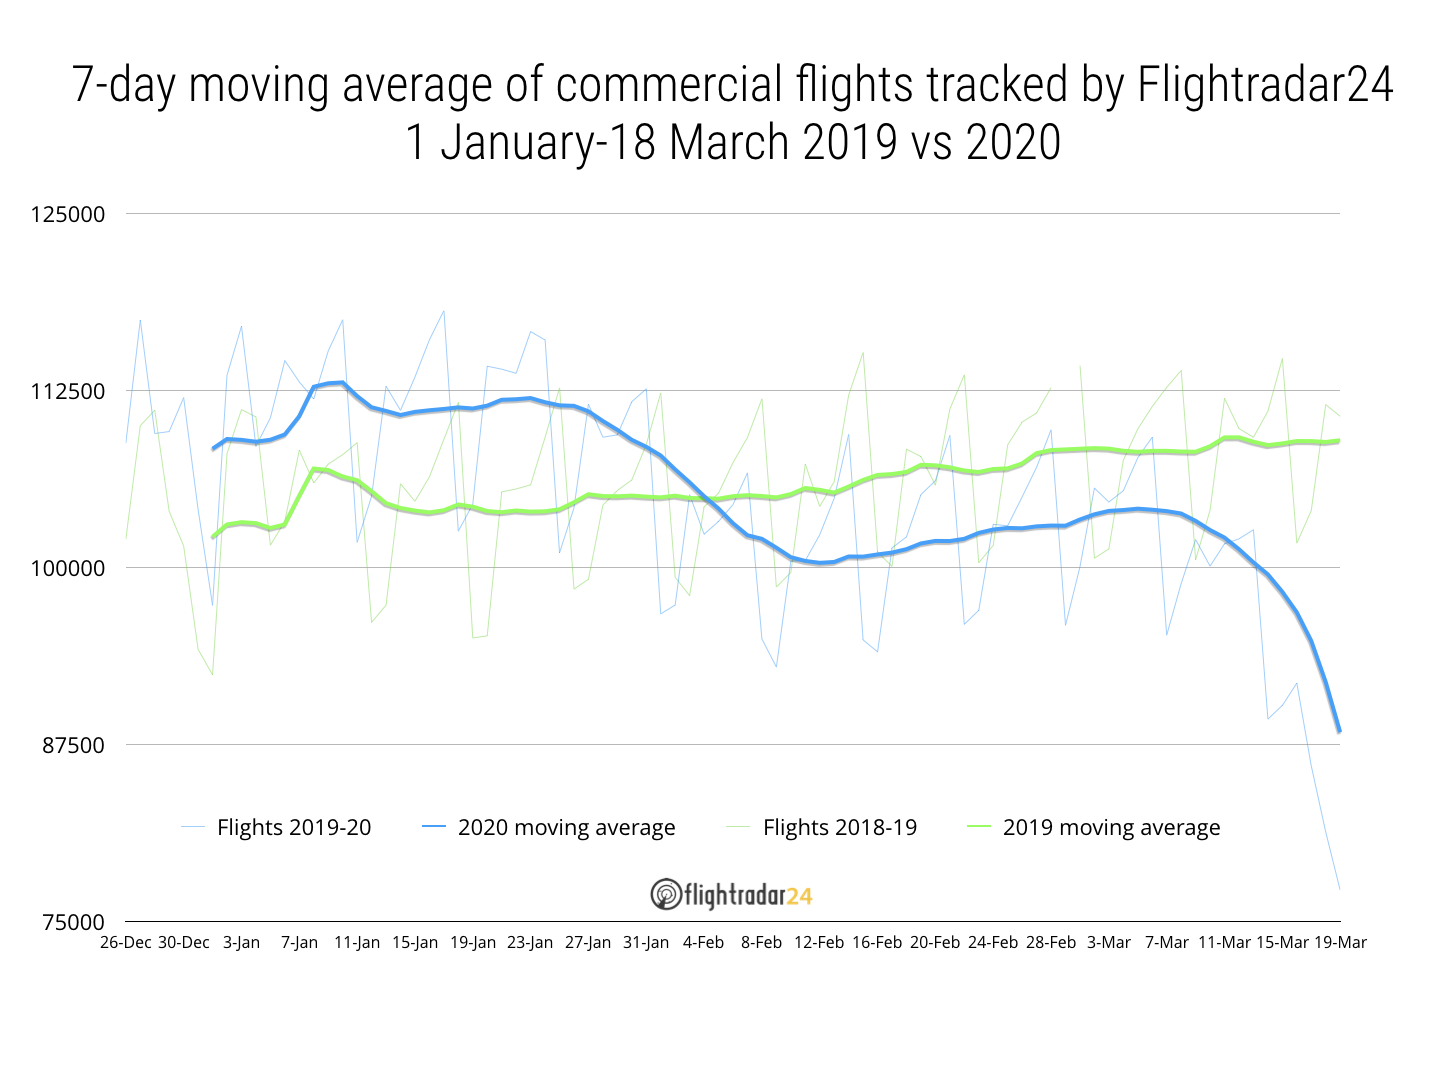 Commercial traffic 2019 vs 2020 through March 19